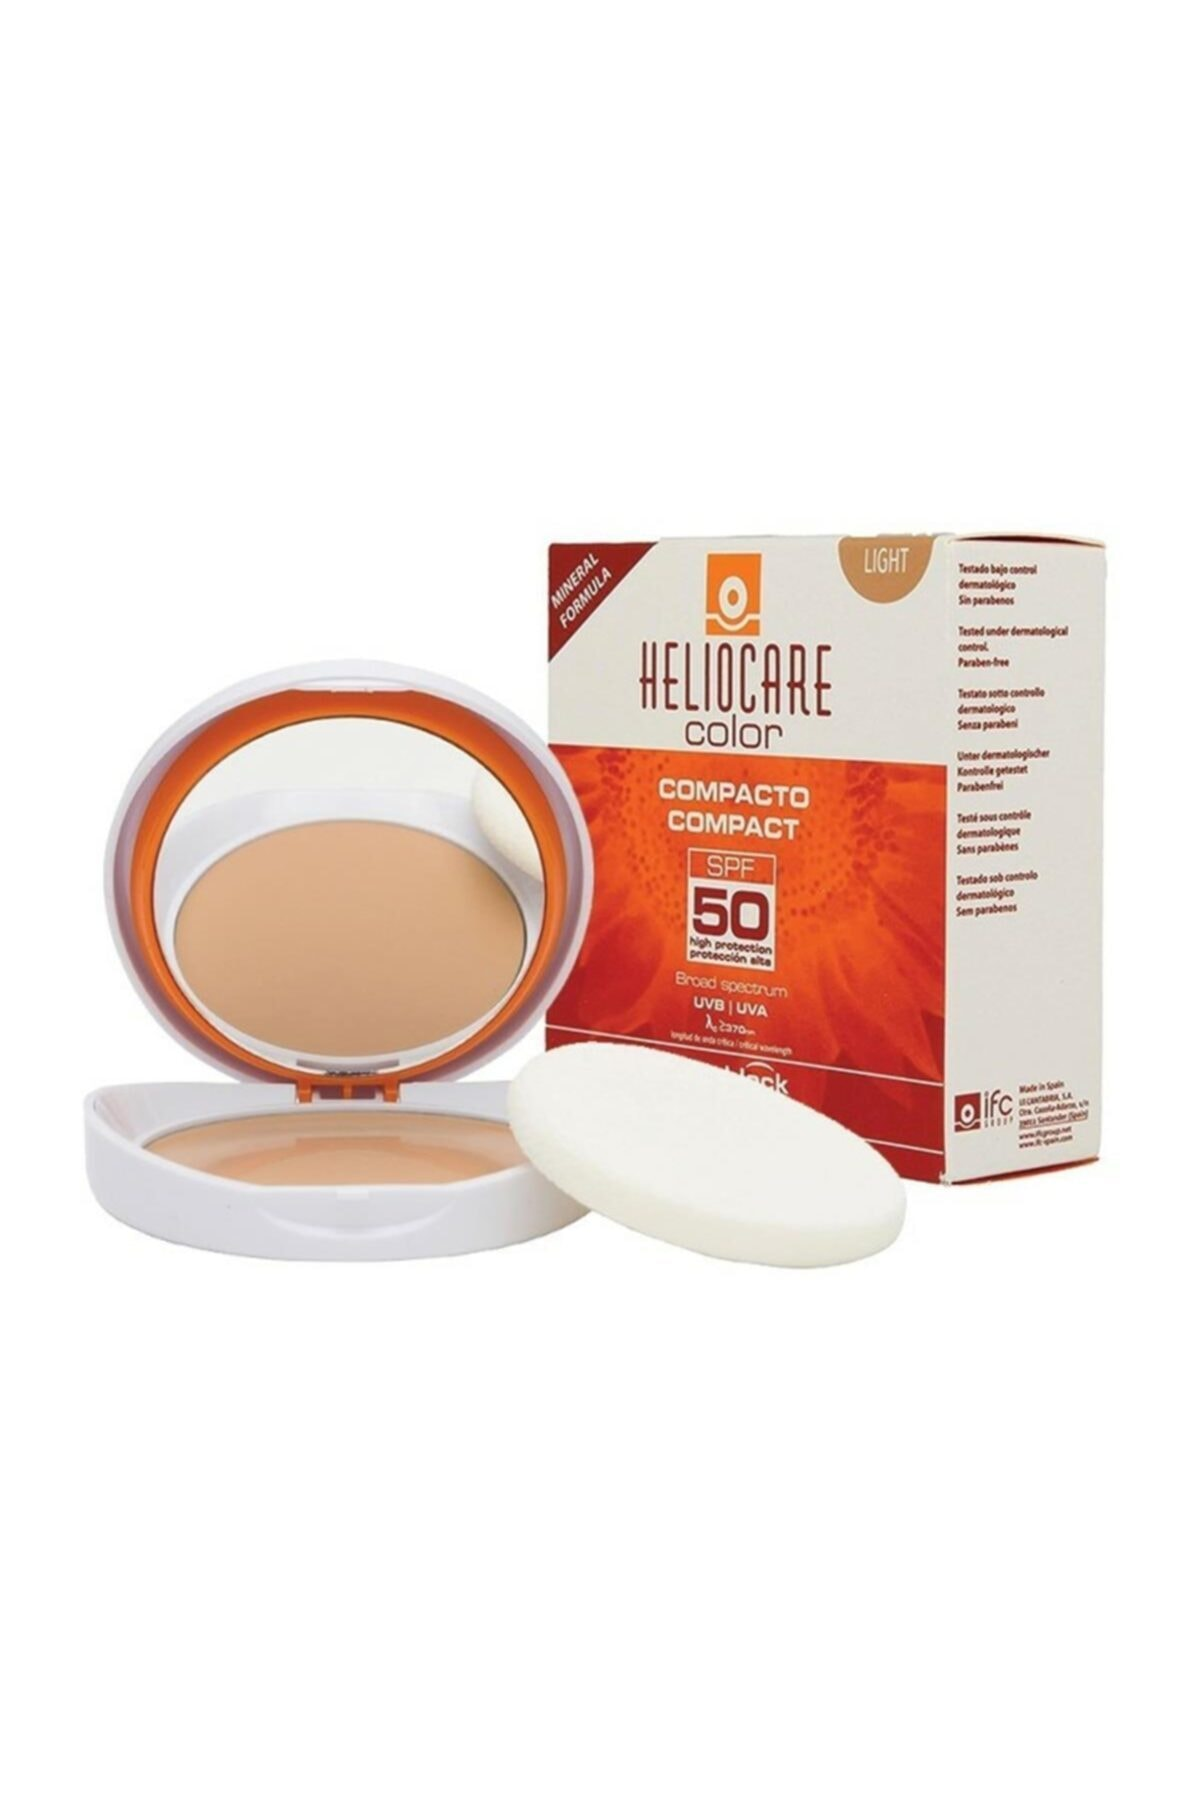 Heliocare Compact Light Buğday Ten Spf50 10 Gr 1